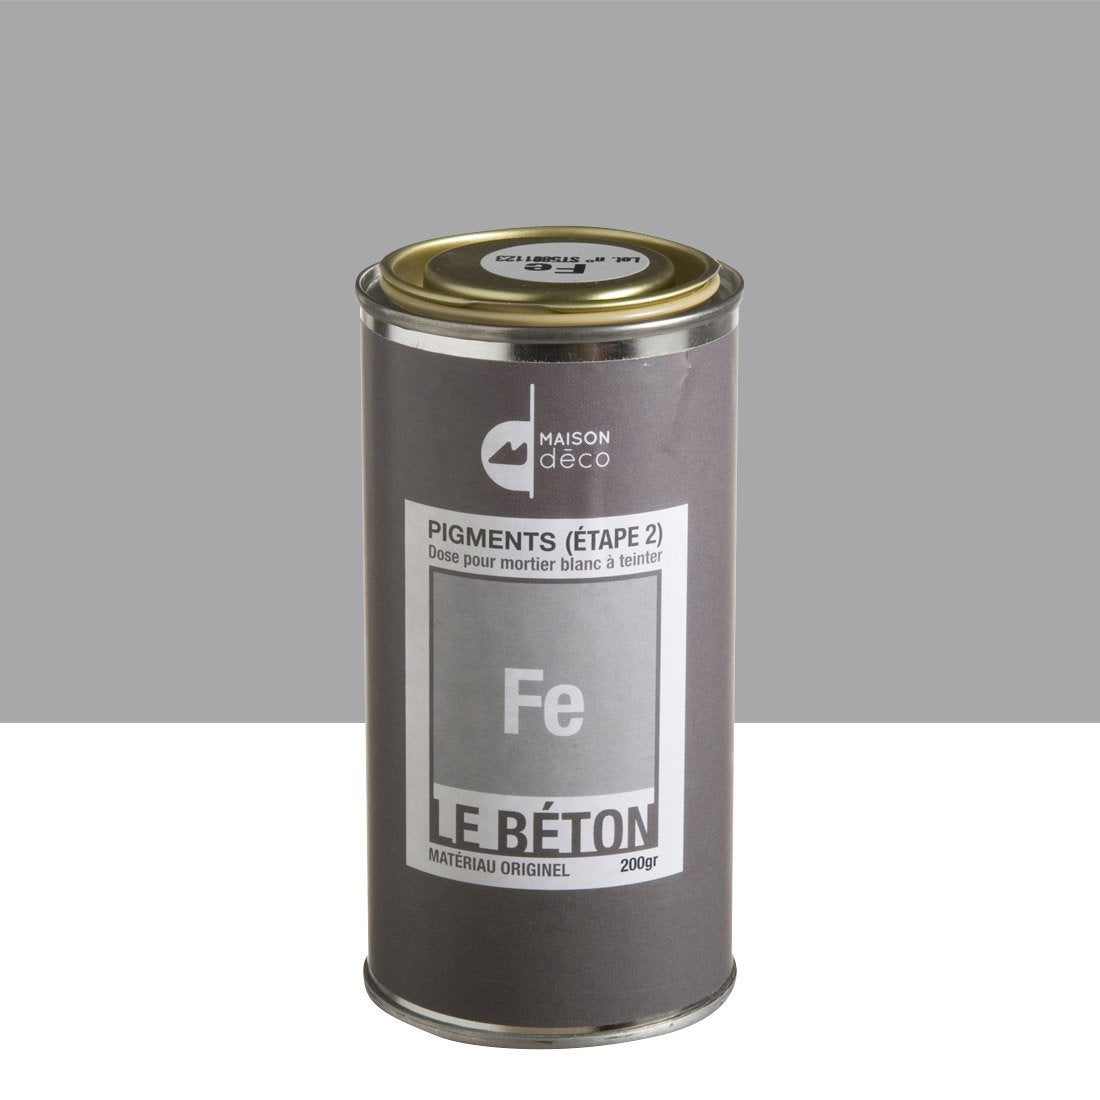 peinture effet pigment le b ton maison deco fe 0 2 kg. Black Bedroom Furniture Sets. Home Design Ideas